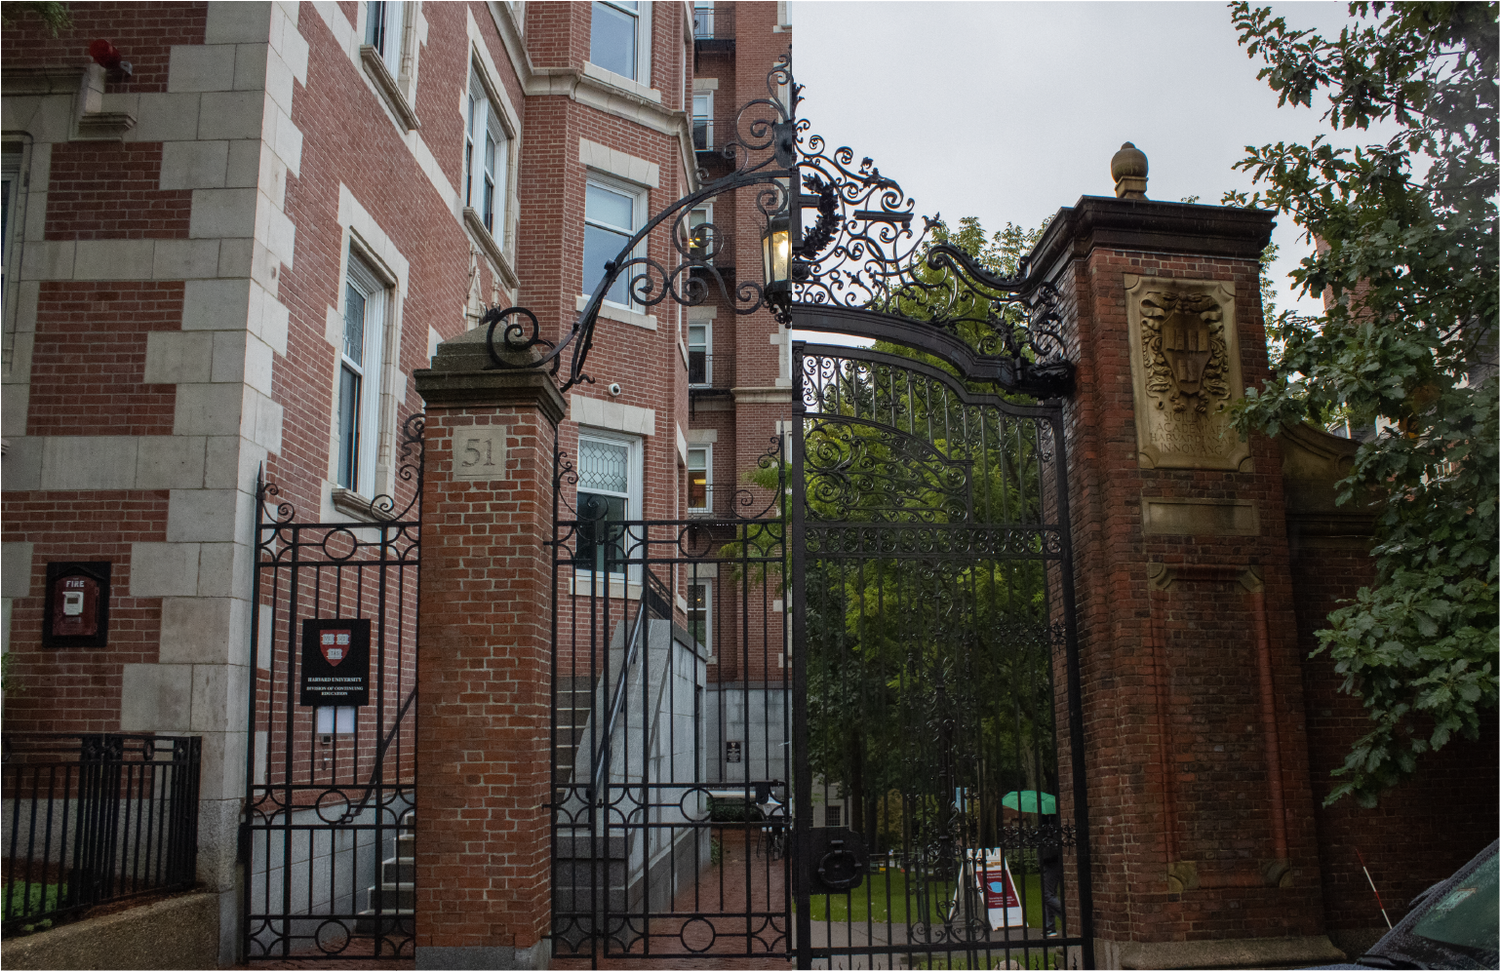 Left: Gates to the offices of the Harvard Division of Continuing Education. Right: Johnston Gate leading into Harvard Yard.